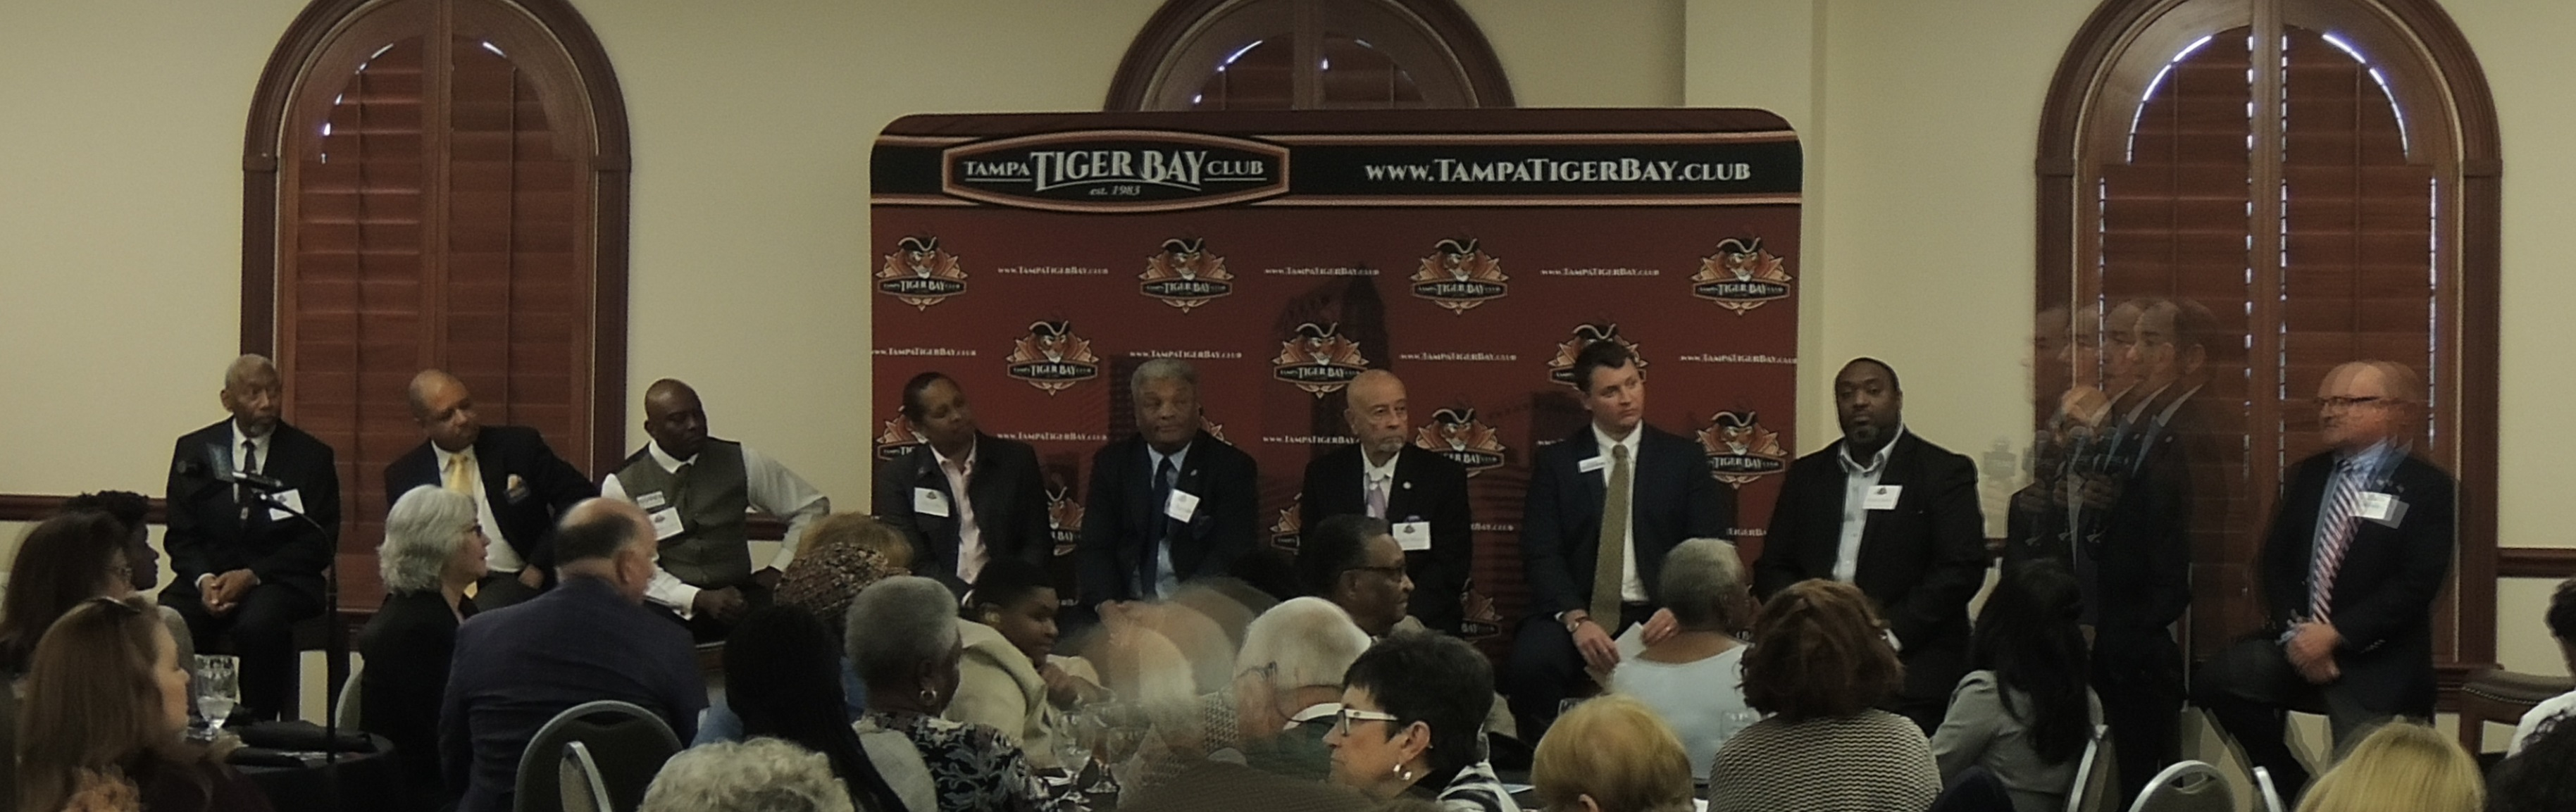 Tampa City Council candidates 2019 election Tampa Tiger Bay Club